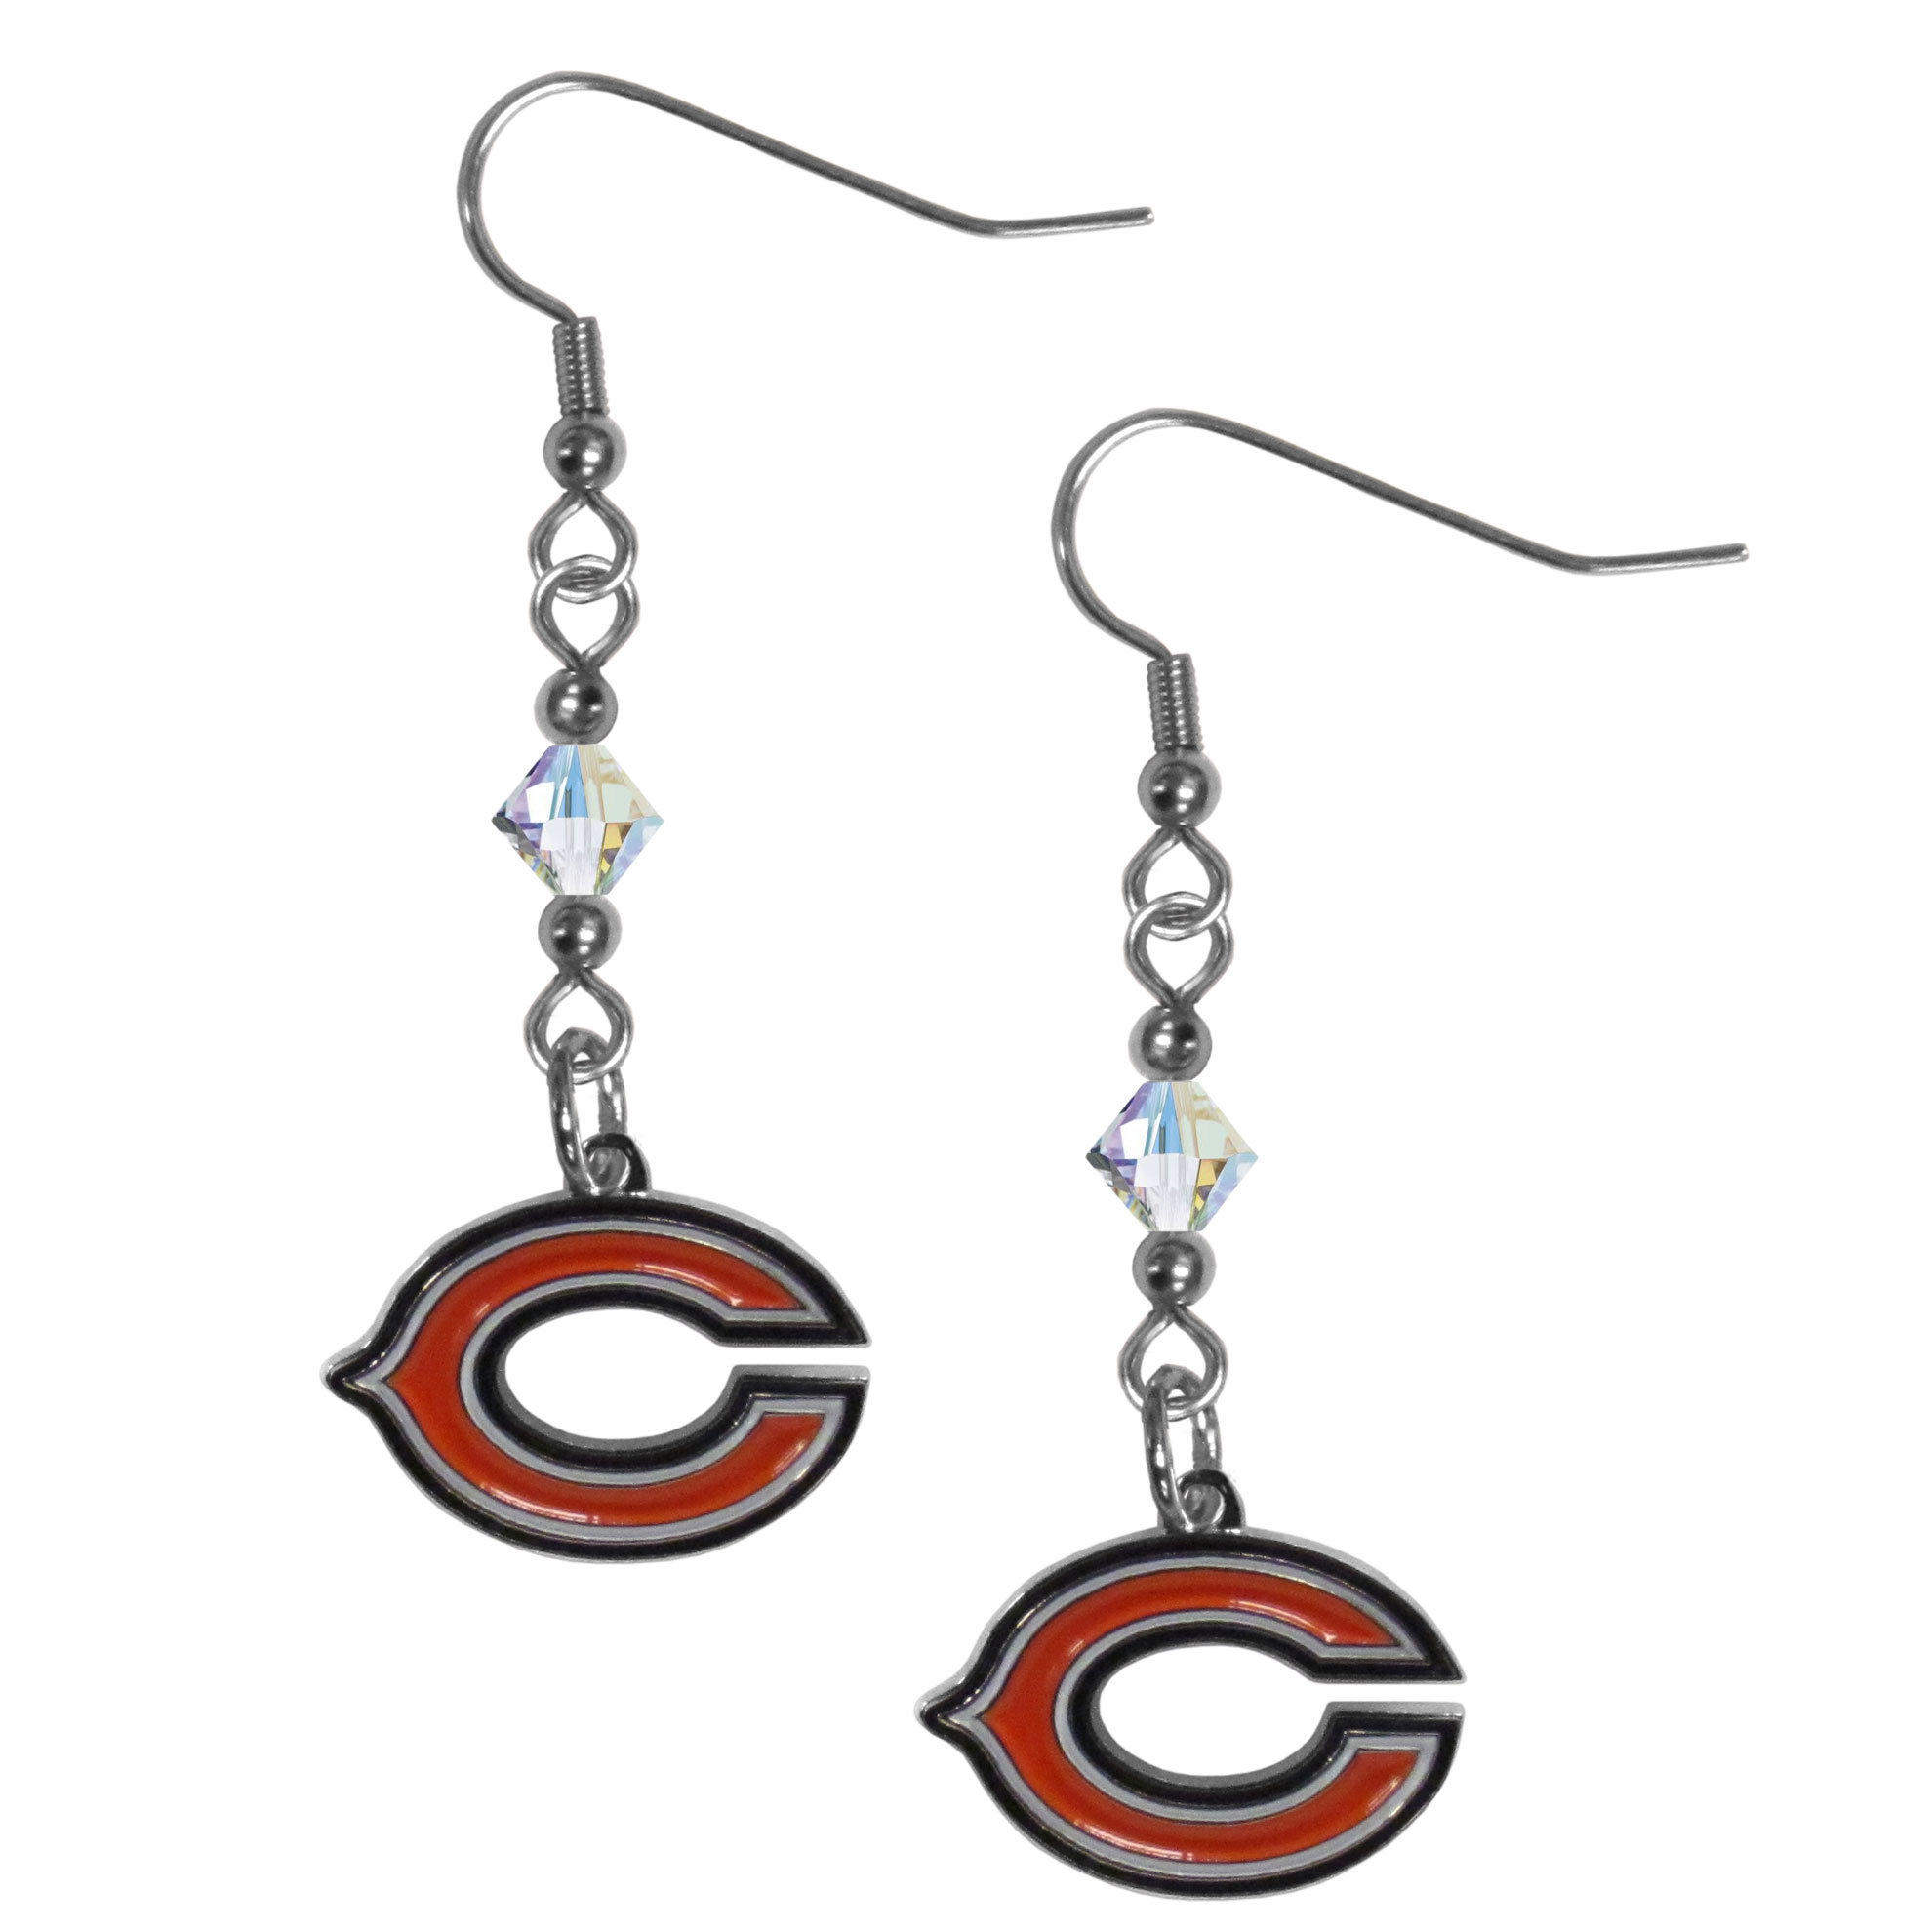 Chicago Bears Crystal Dangle Earrings - Our crystal dangle earrings are the perfect accessory for your game day outfit! The earrings are approximately 1.5 inches long and feature an iridescent crystal bead and nickel free chrome Chicago Bears charm on nickel free, hypoallergenic fishhook posts.